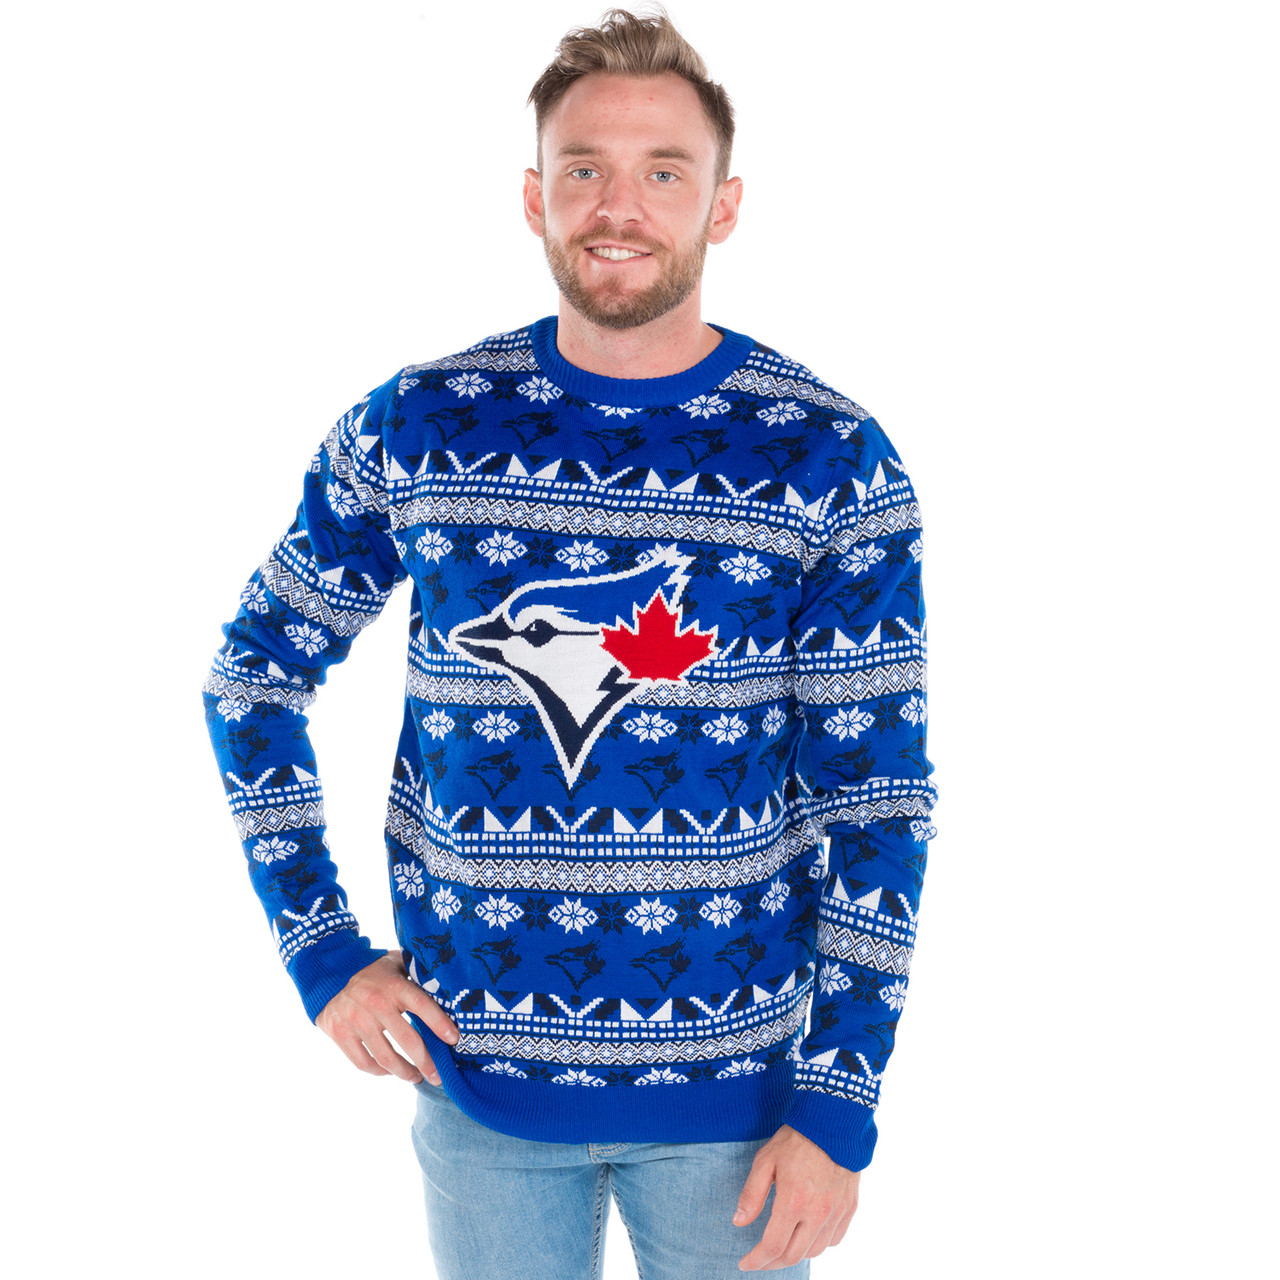 Toronto Blue Jays Ugly Christmas Sweater 2017 | RetroFestive.ca